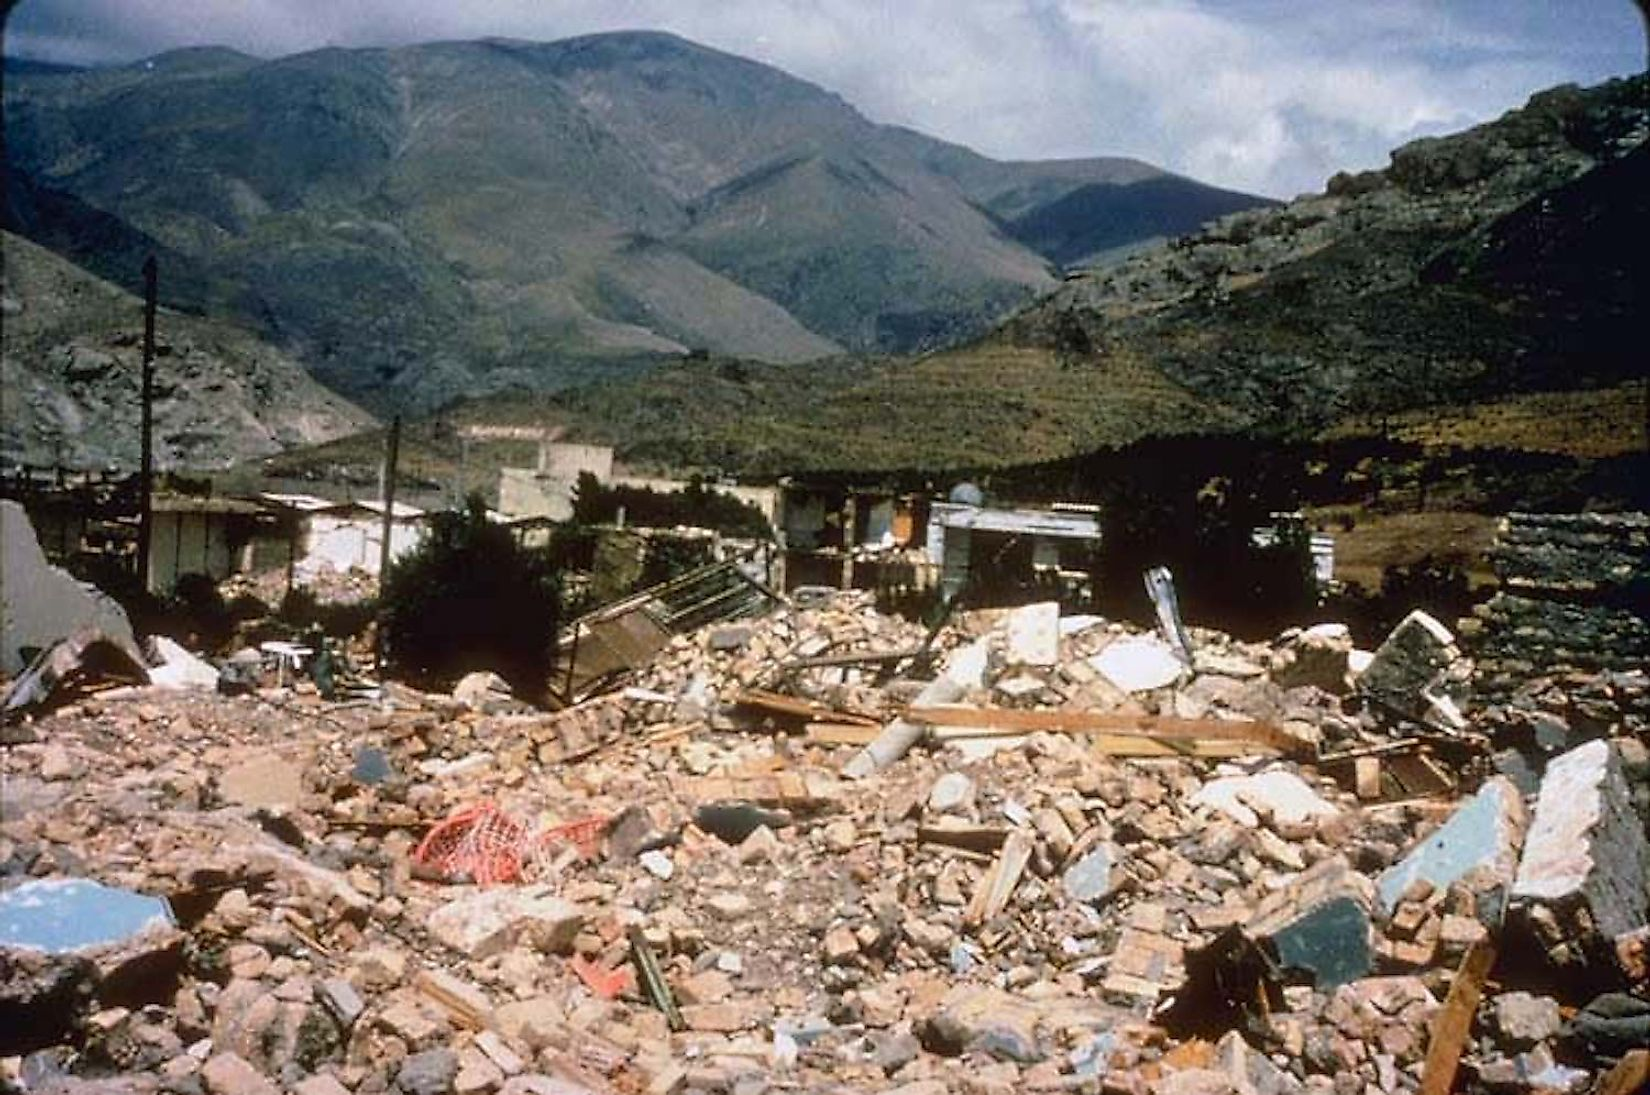 The destruction caused by Manjil-Rudbar earthquake. Image credit: M. Mehrain, Dames and Moore./Public domain